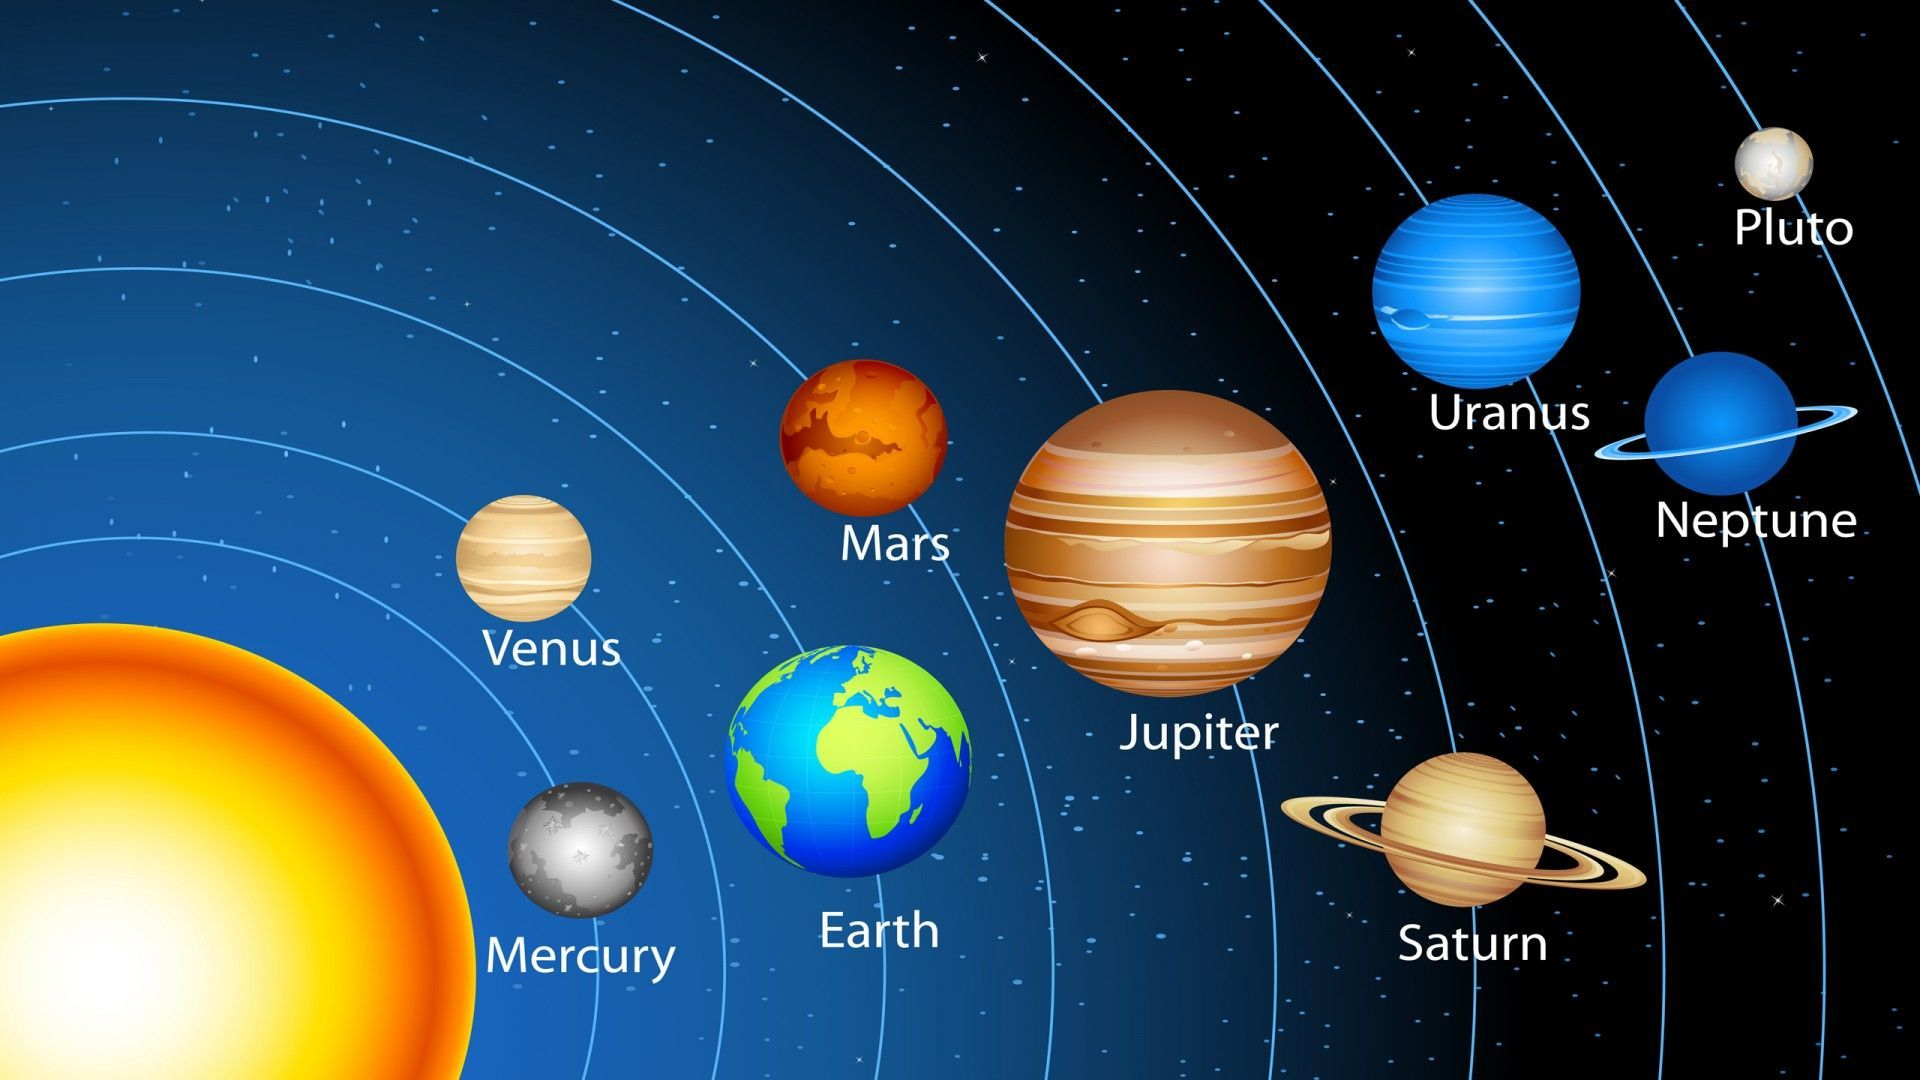 Solar System Live Wallpaper Android Apps On Google - Solar System Images In Hd , HD Wallpaper & Backgrounds